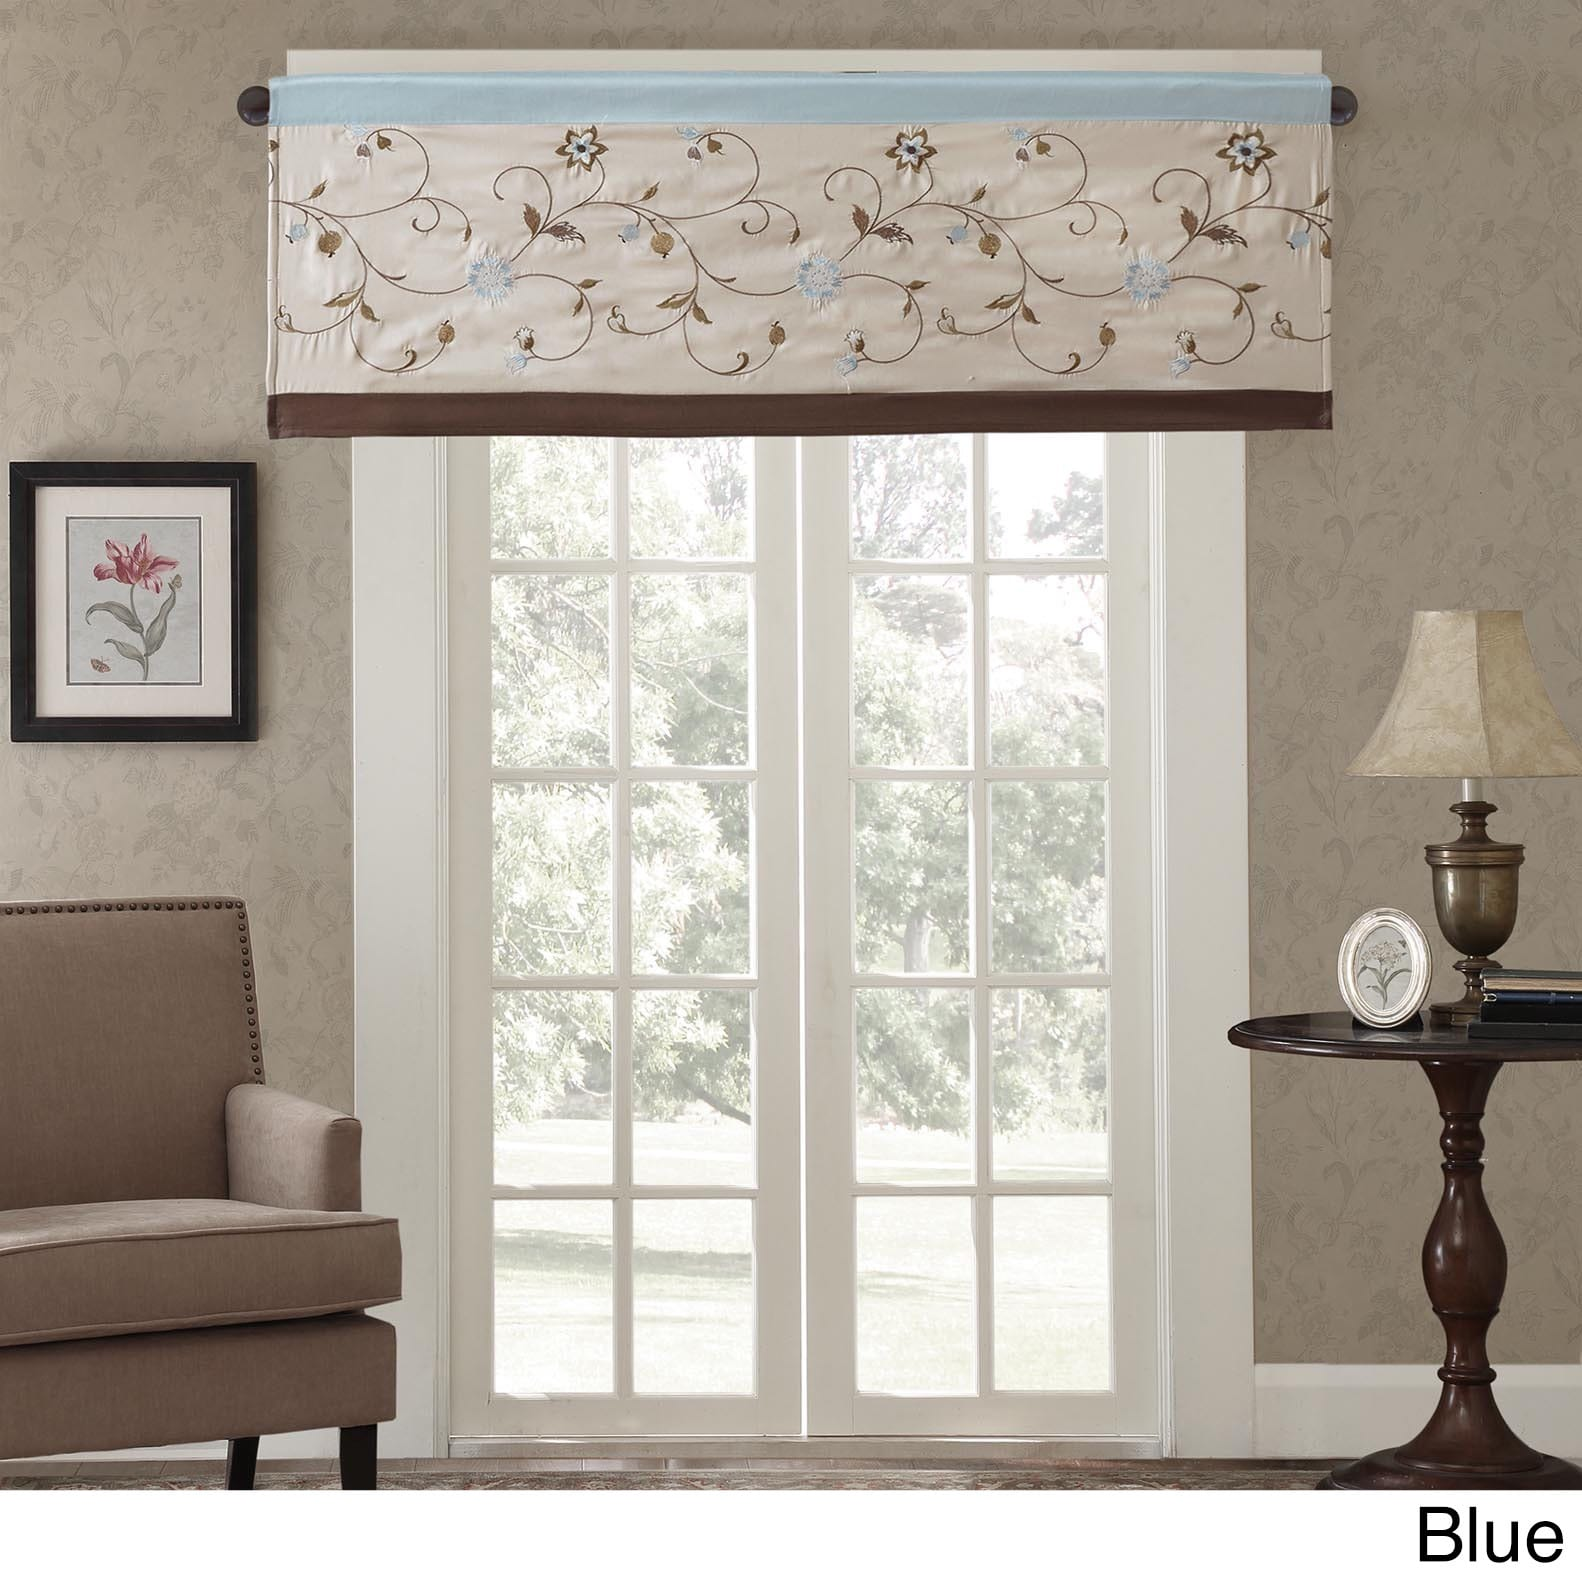 inspect tier curtains valance blue set and aqua home kitchen fruit curtainsnautical window